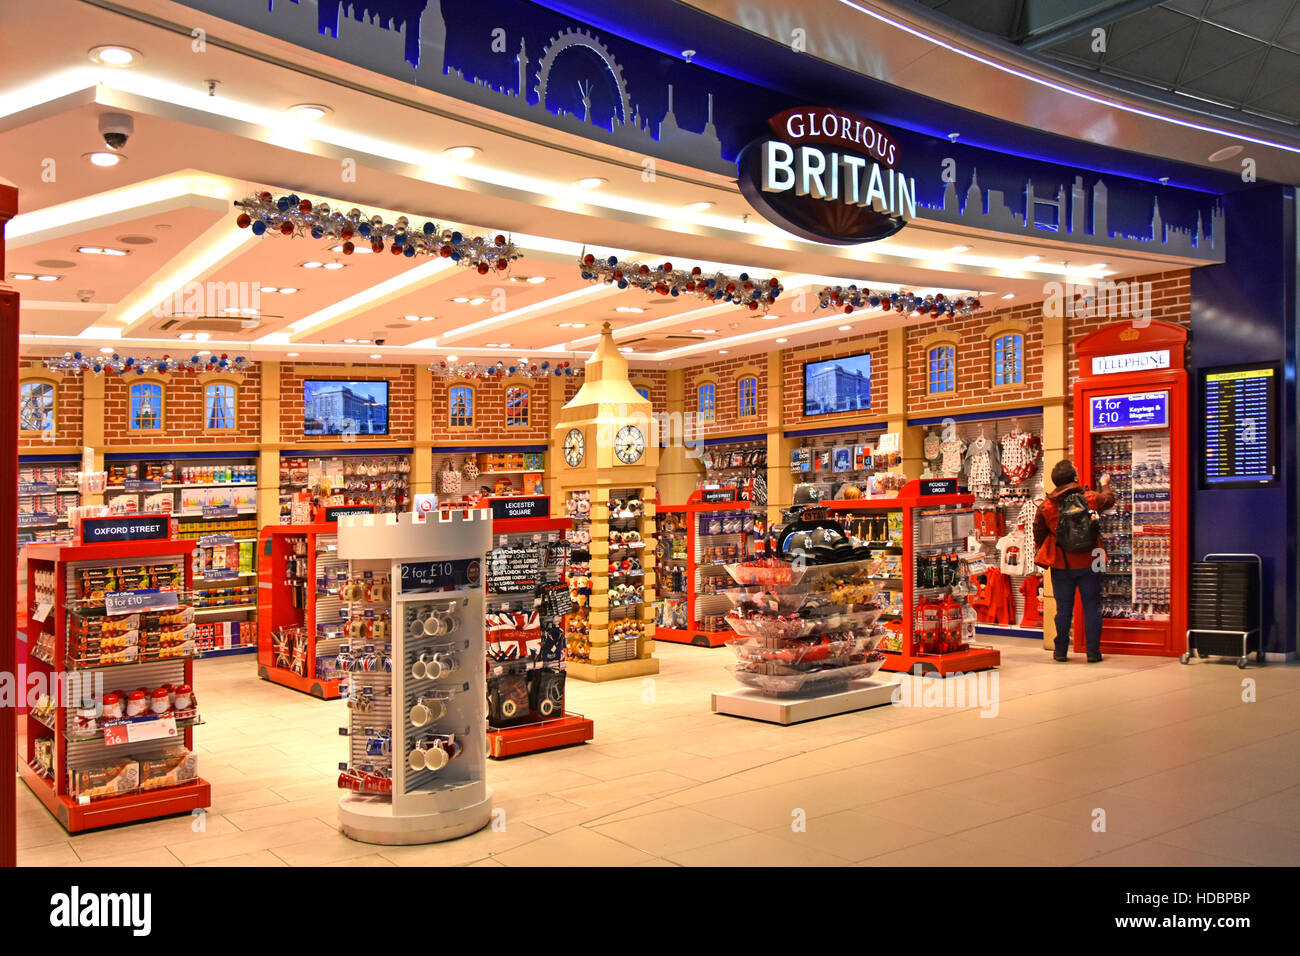 Stansted Airport London Shopping At Glorious Britain Gift Souvenir